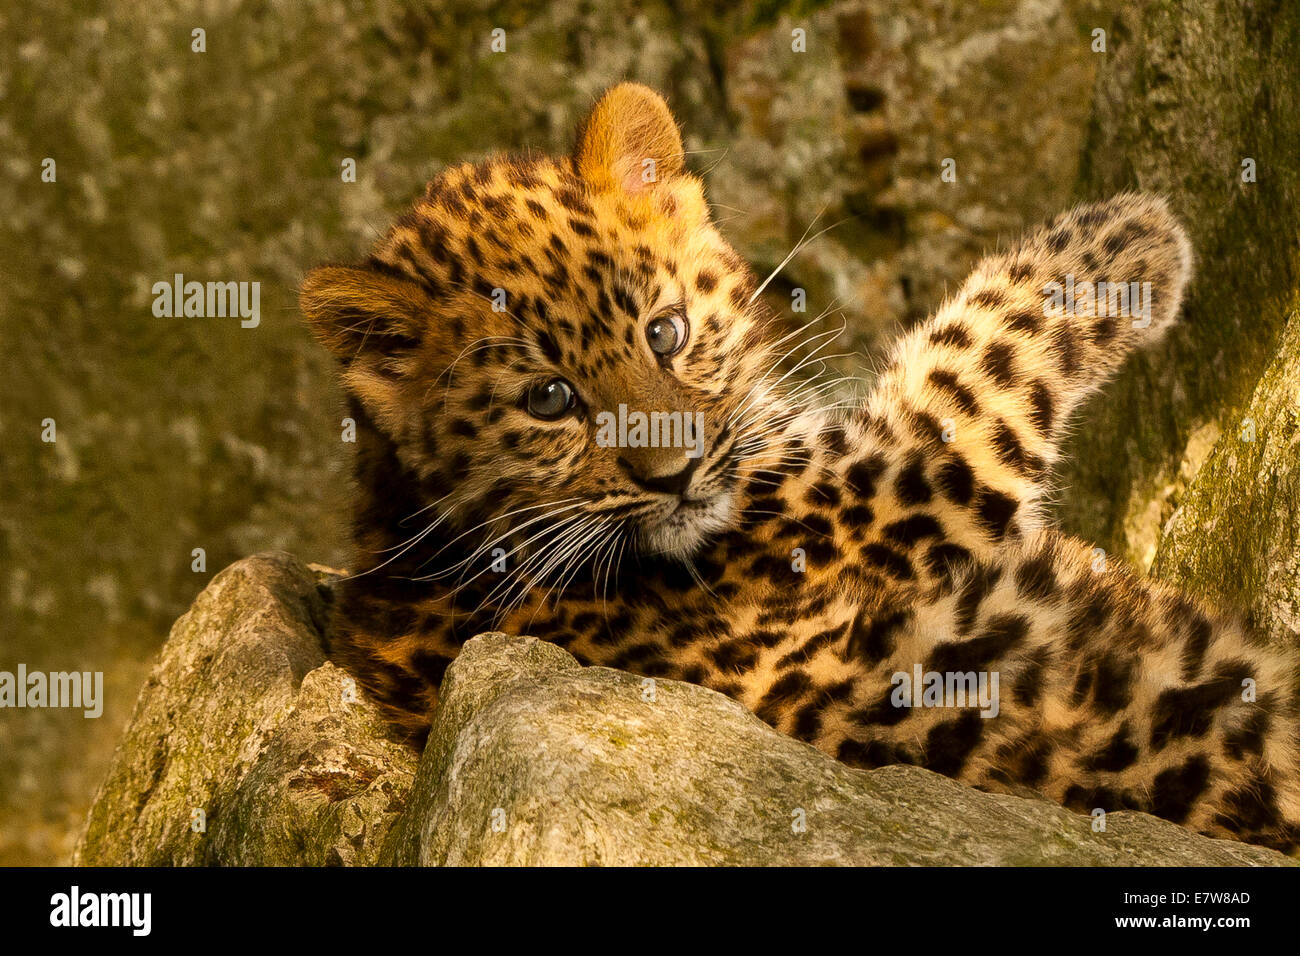 Extremely Rare Amur Leopard Cub (Panthera Pardus Orientalis) Laying On Rock - Stock Image